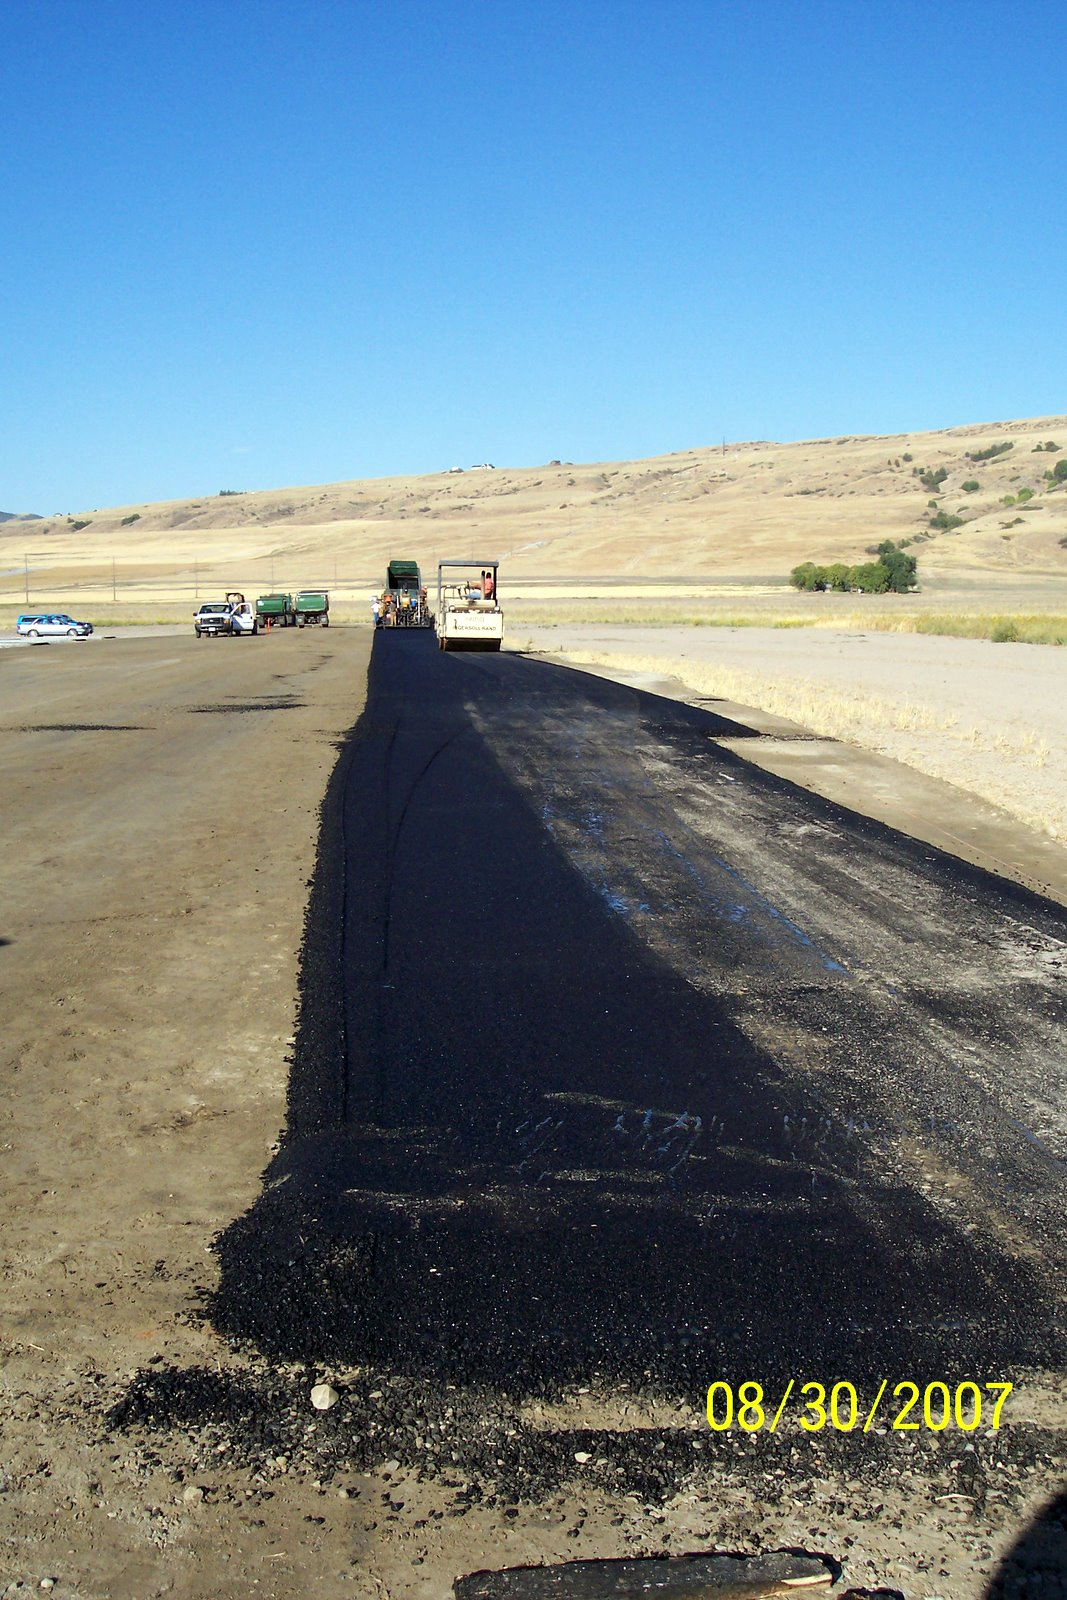 PAVING CONTINUES ALONG THE NORTH EDGE OF RUNWAY.